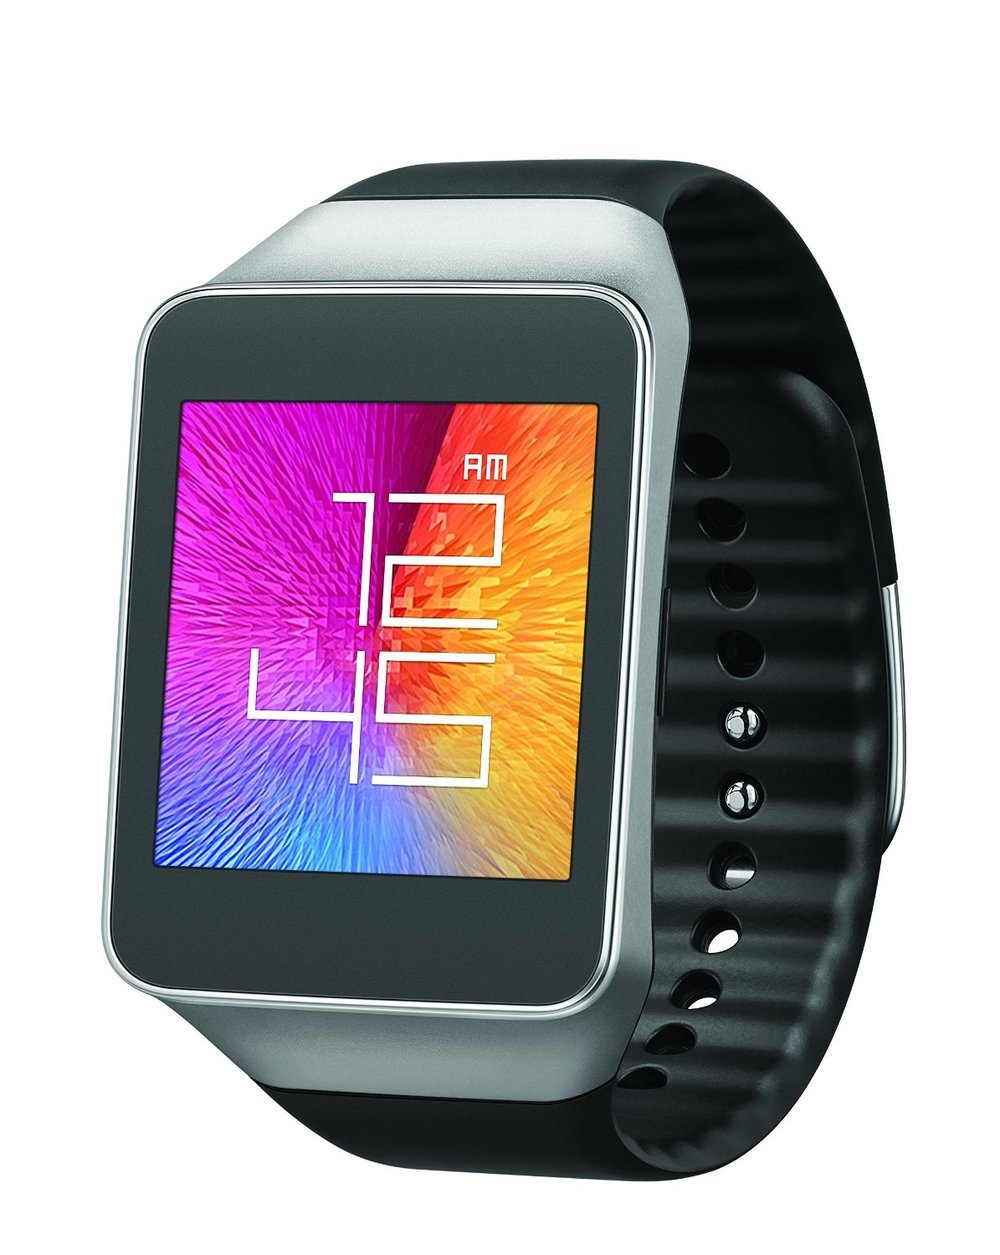 Samsung Gear Live Smartwatch for Android Devices - Retail Packaging - Black